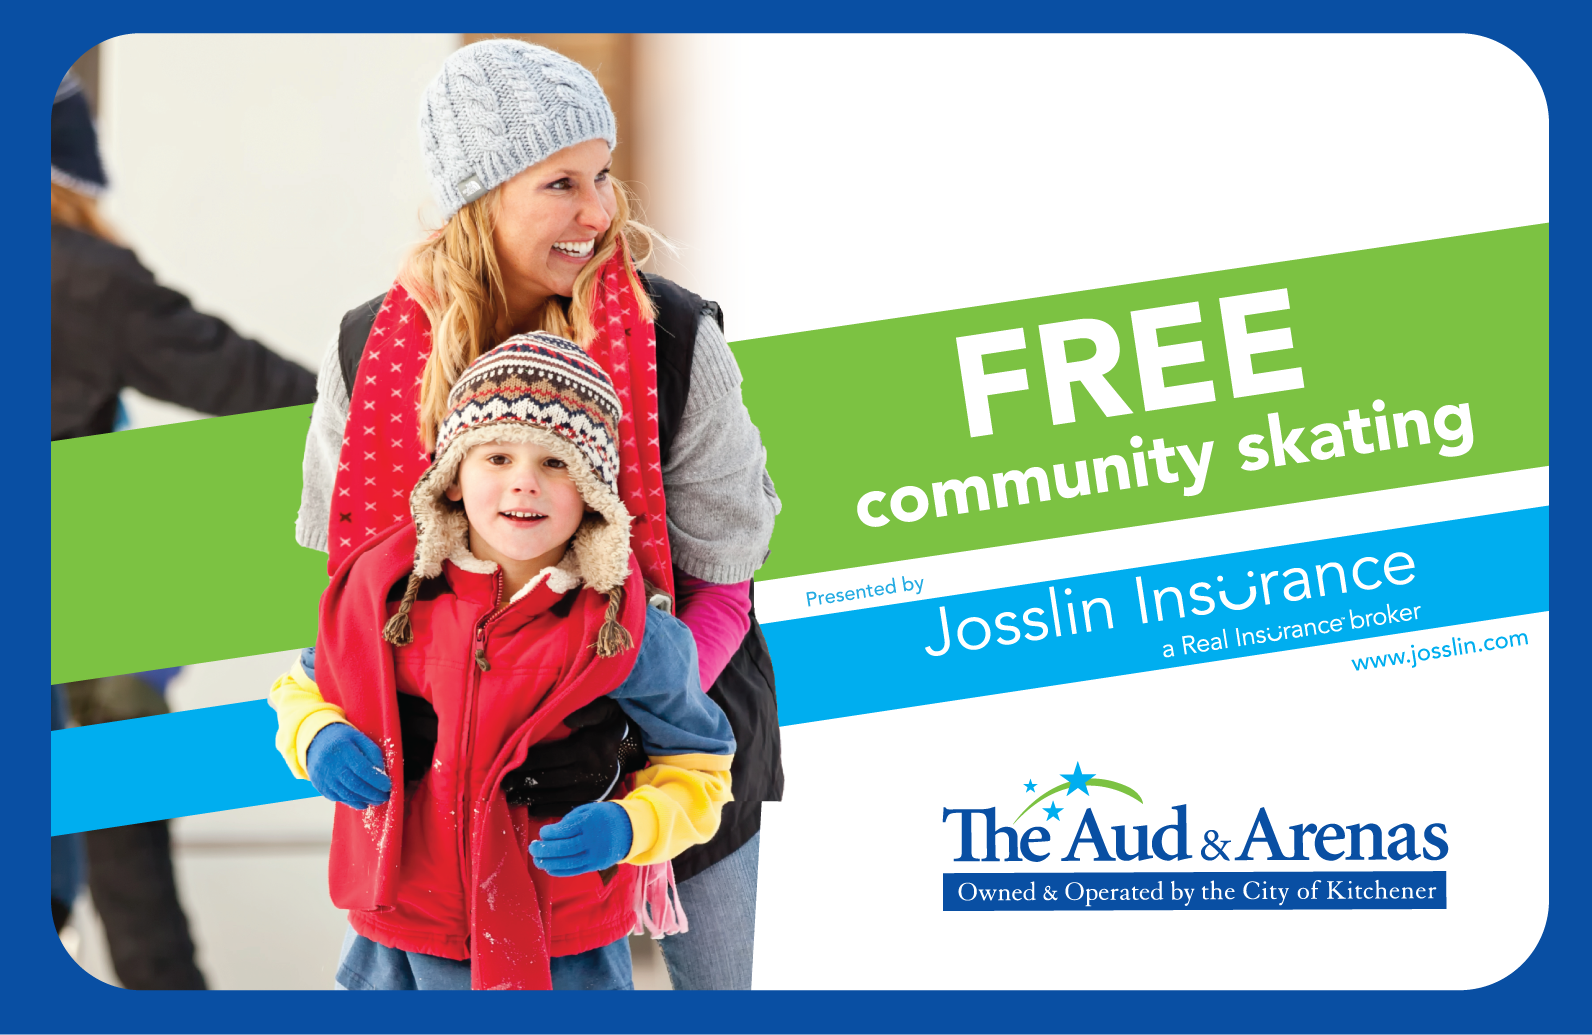 Free Community Skating at The Aud & Arenas presented by Josslin Insurance__mother and child skating